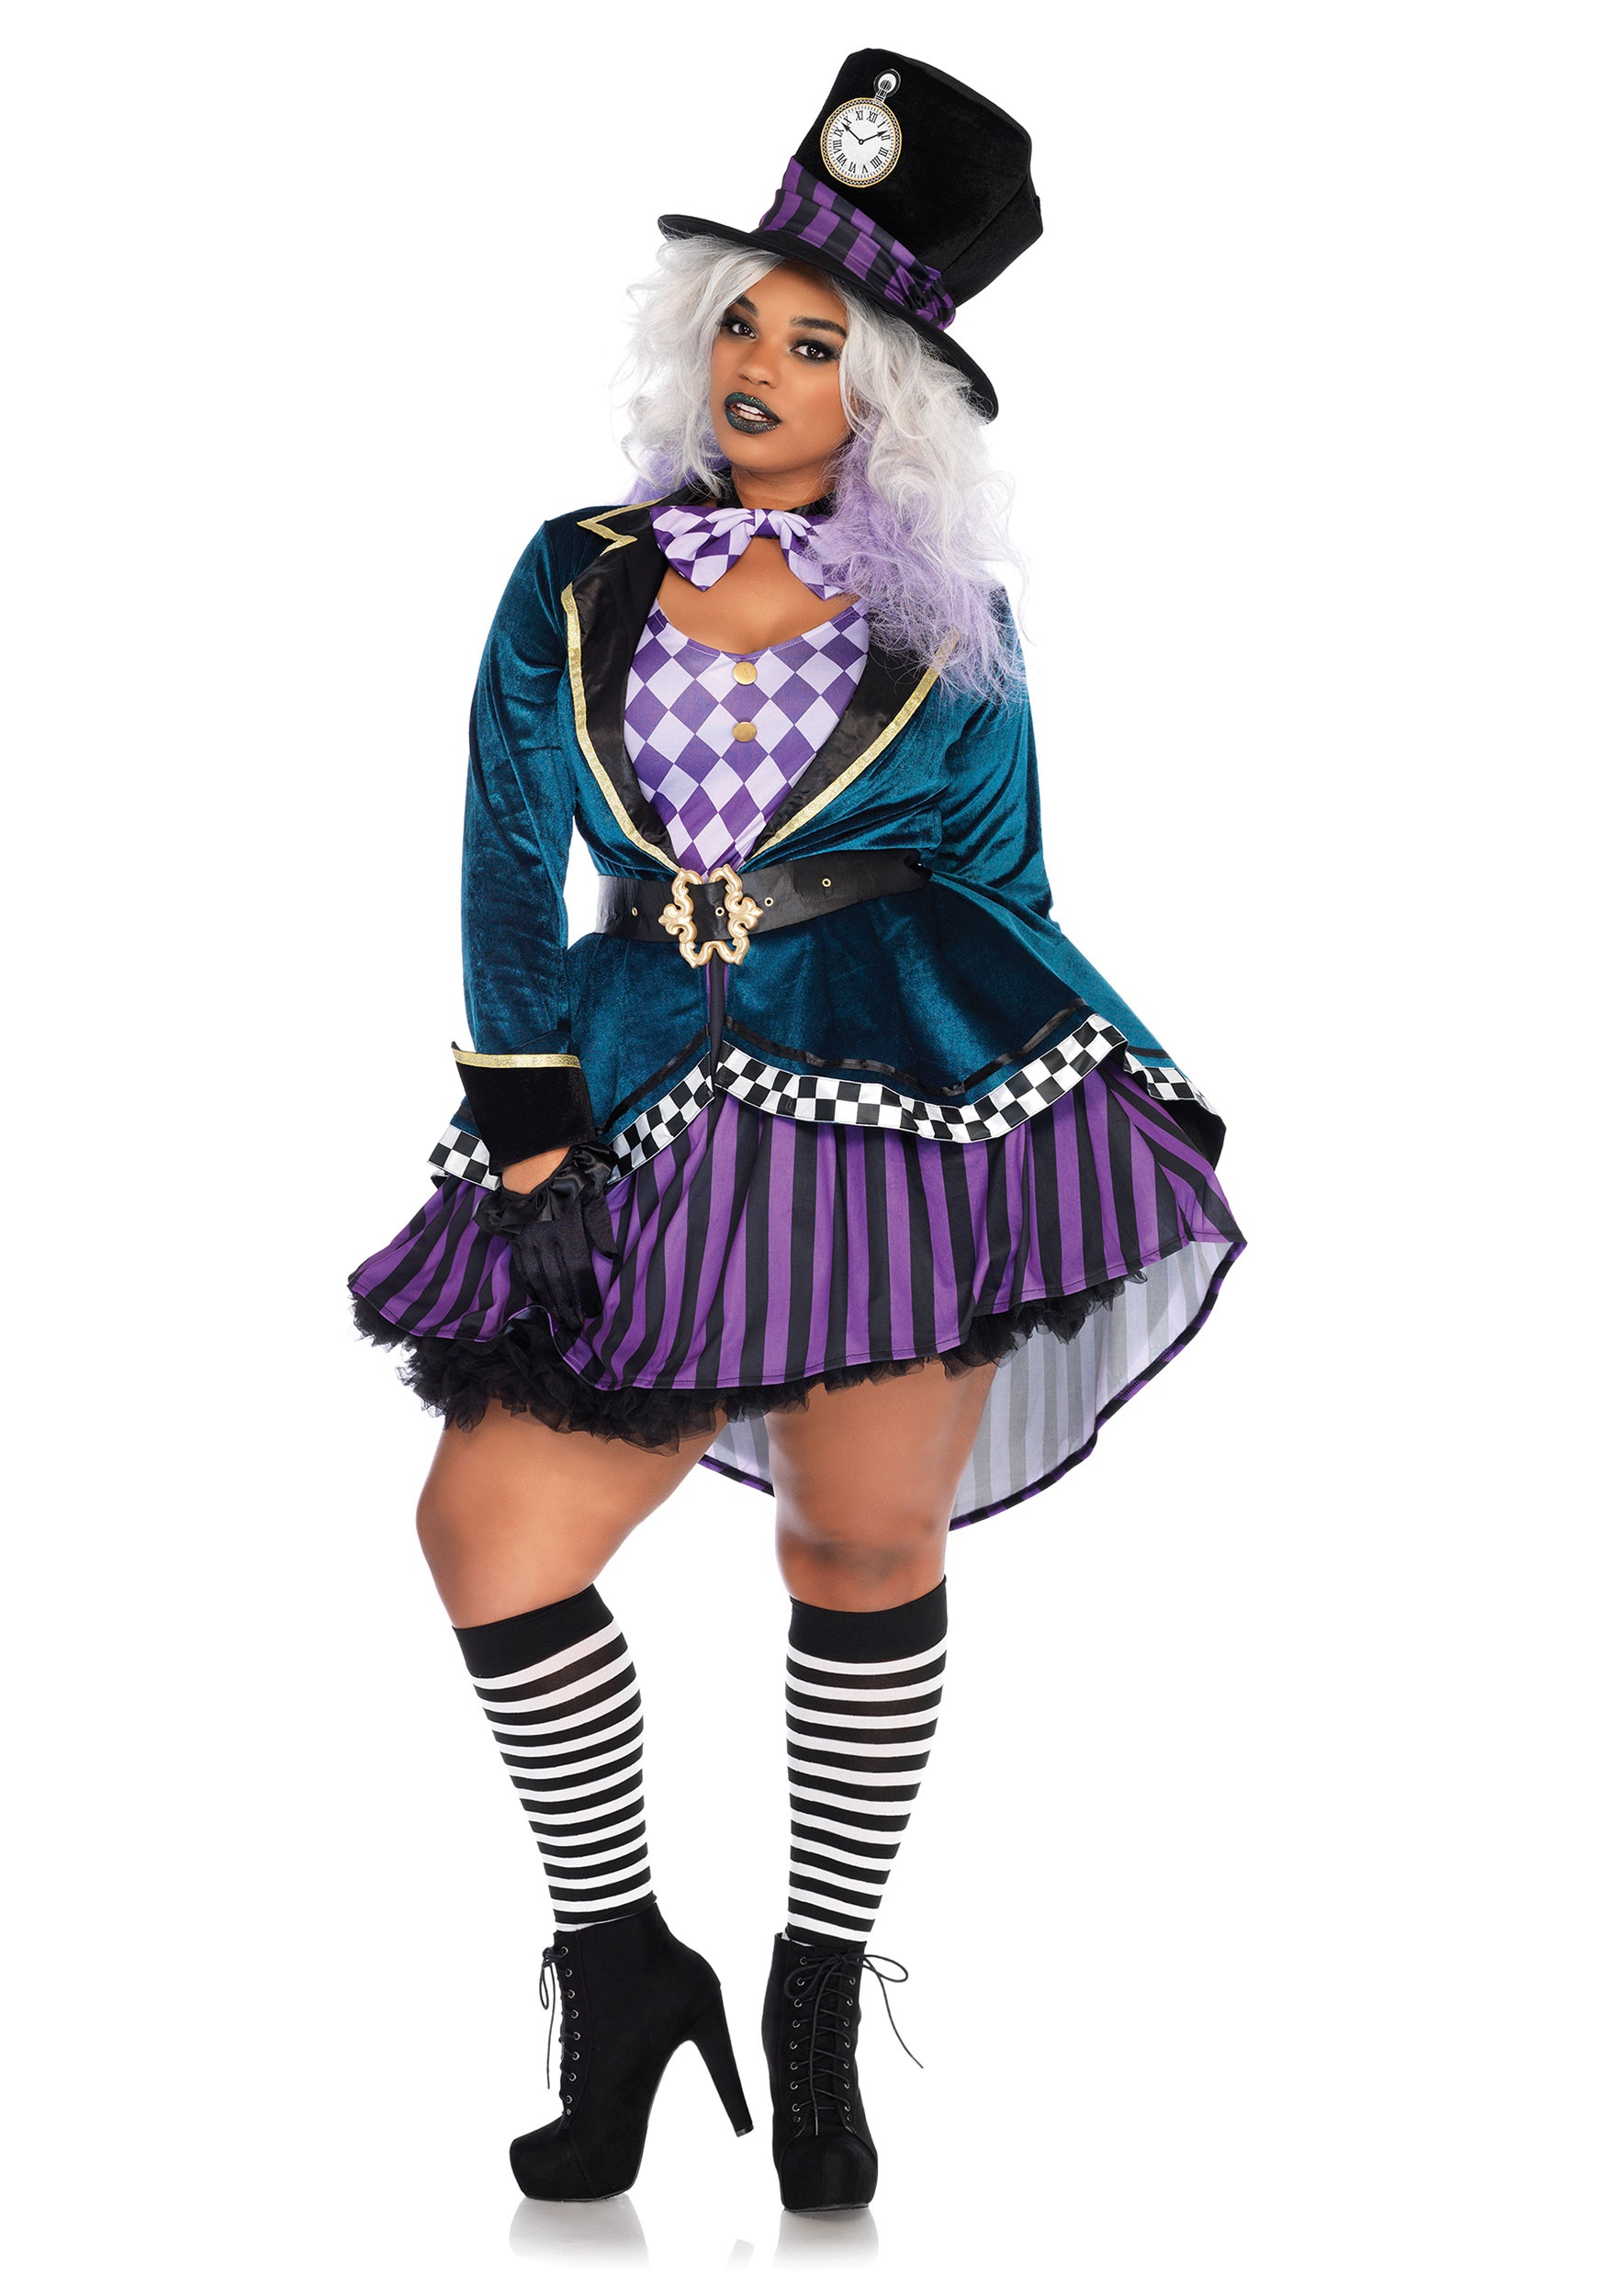 Womenu0027s Delightful Mad Hatter Plus Size Costume  sc 1 st  Fun.com & Delightful Mad Hatter Plus Size Costume for Women